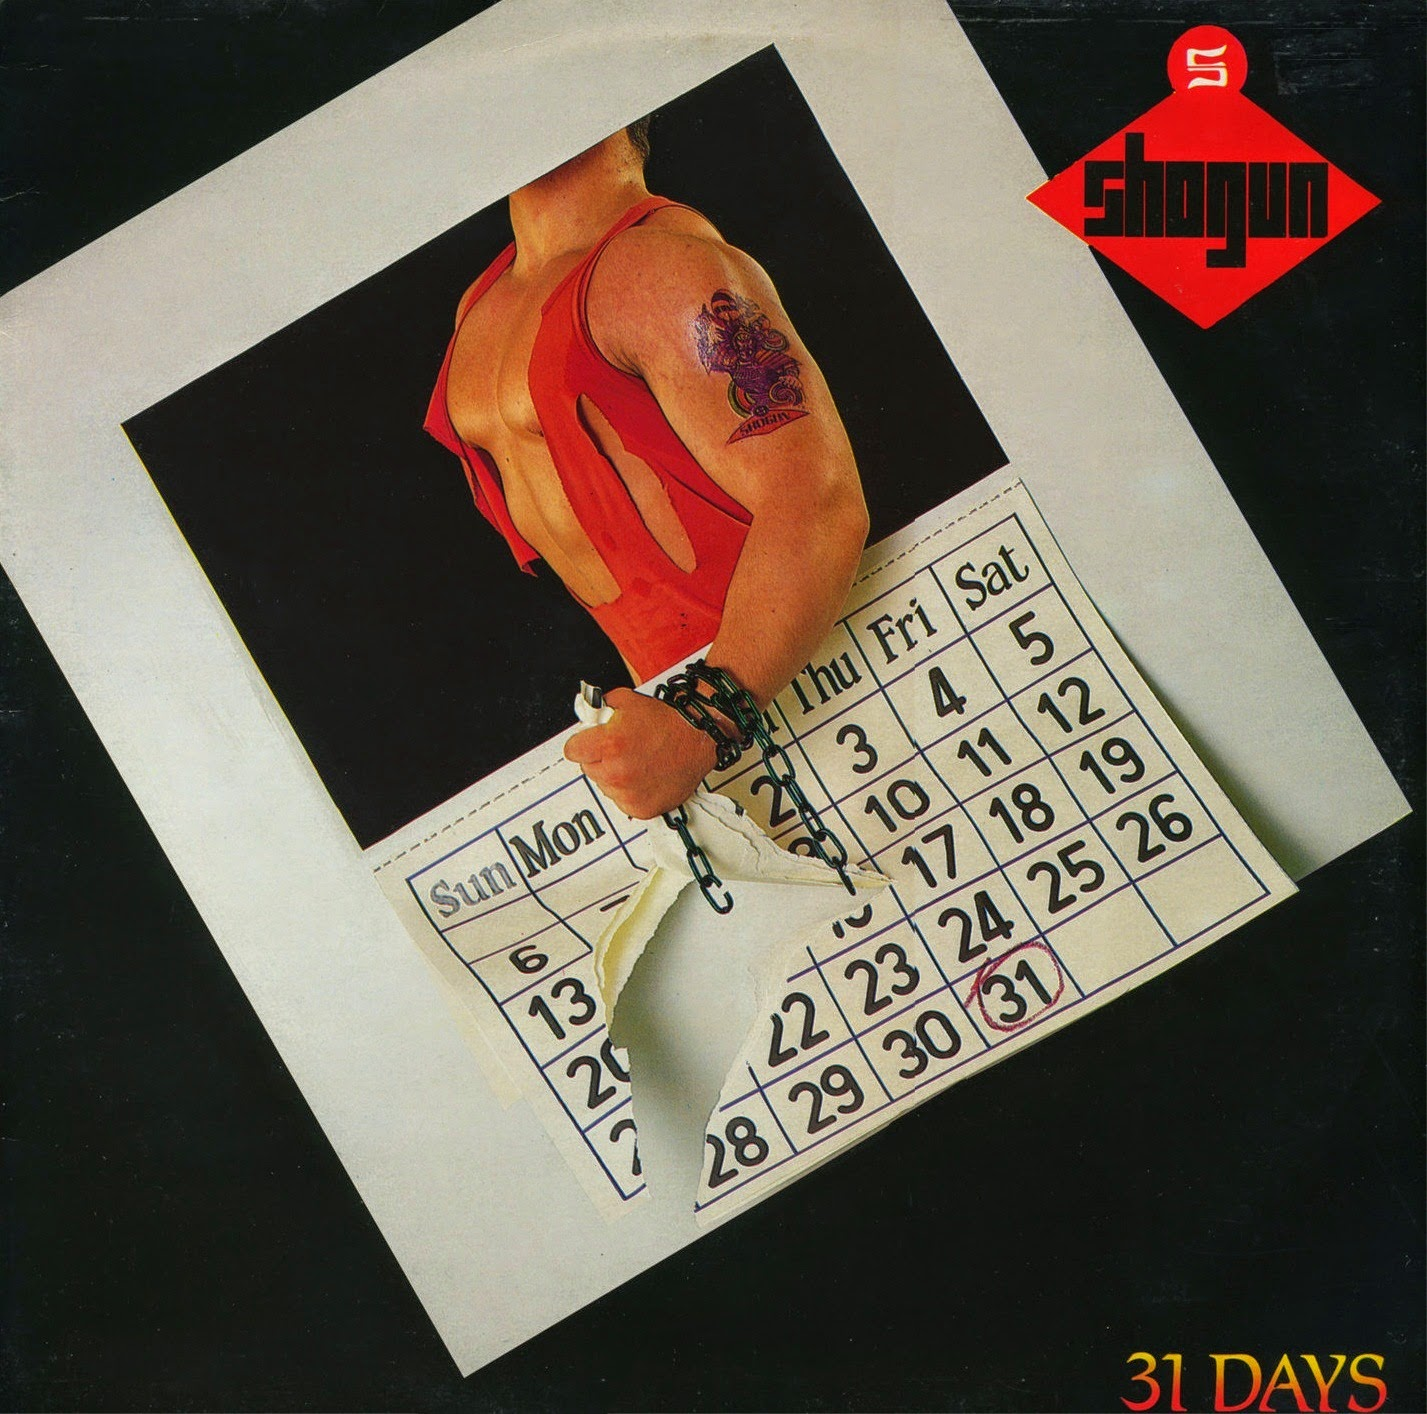 Shogun 31 days 1987